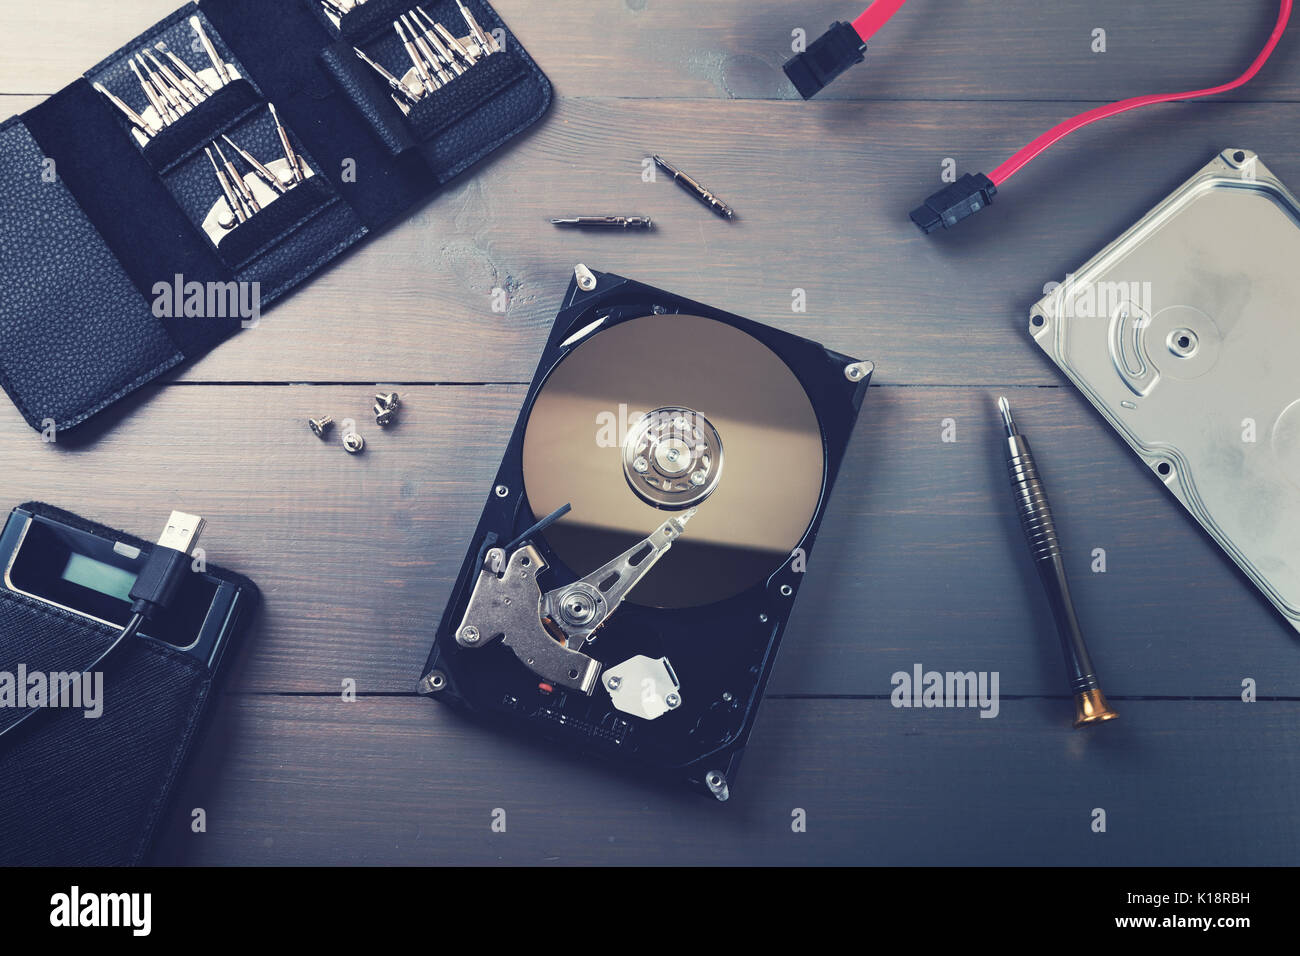 computer hardware repair and service - Stock Image